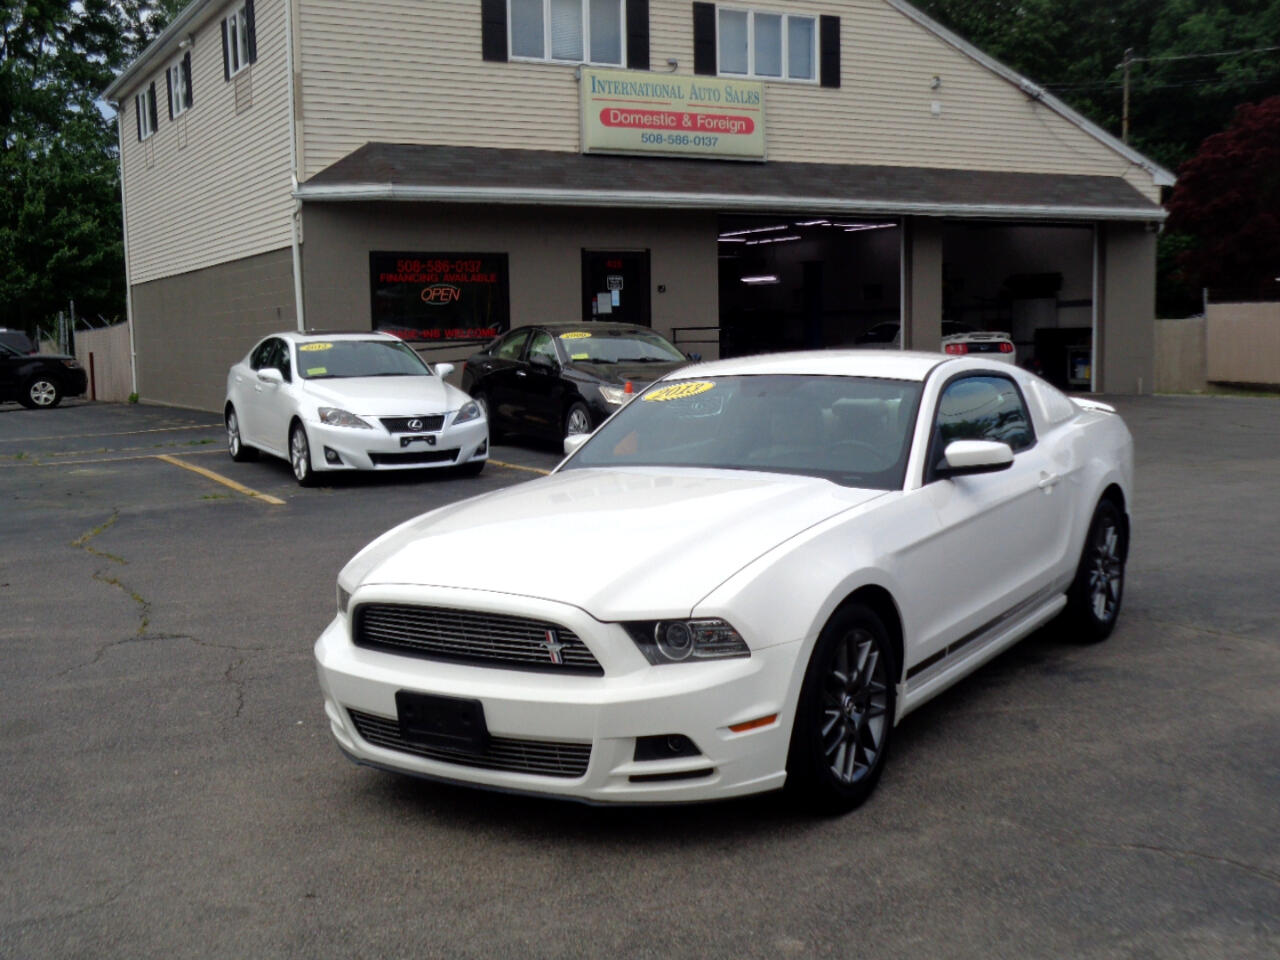 Ford Mustang V6 Coupe 2013